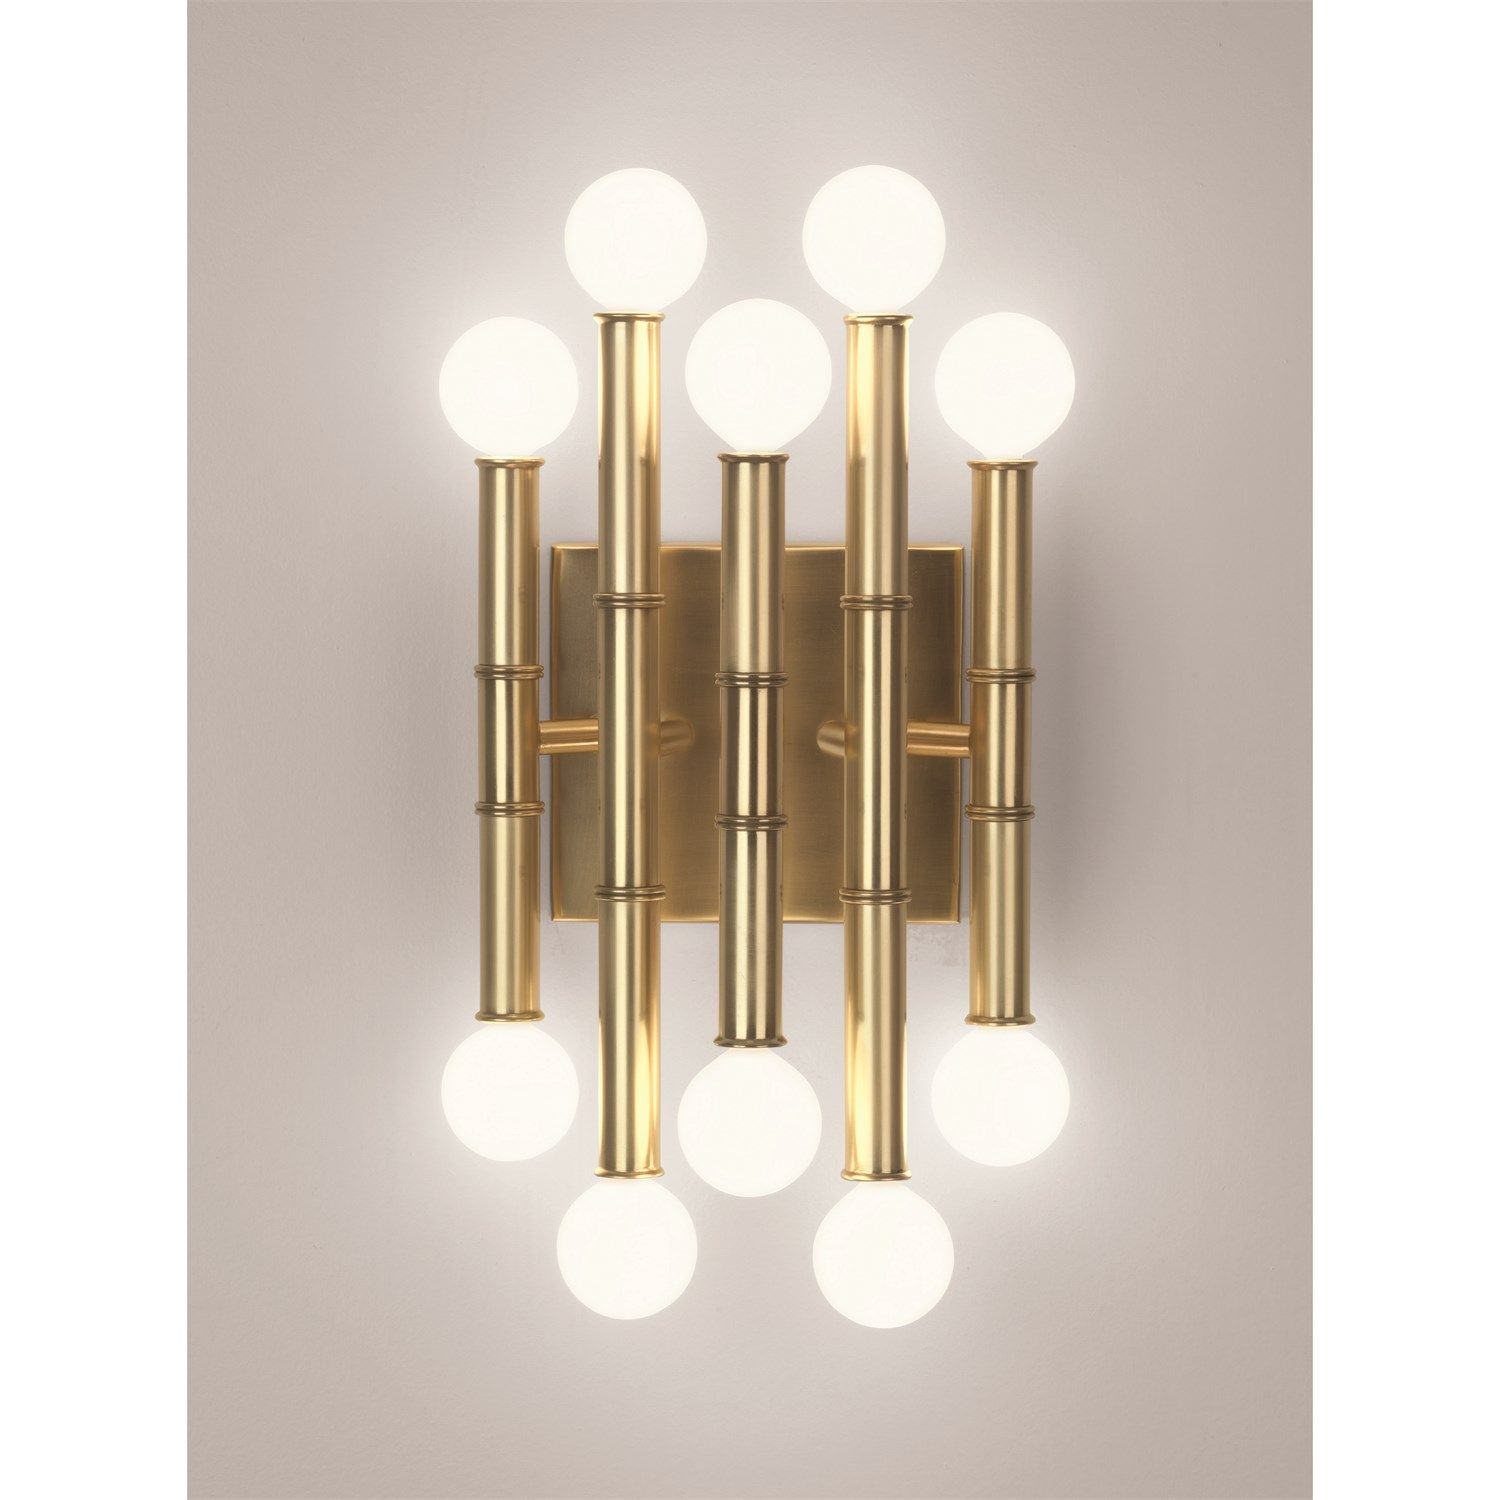 Robert Abbey 686 Jonathan Adler Meurice 10 Light Wall Sconce In Antique Brass Wall Sconce Lighting Indoor Wall Sconces Brass Wall Sconce